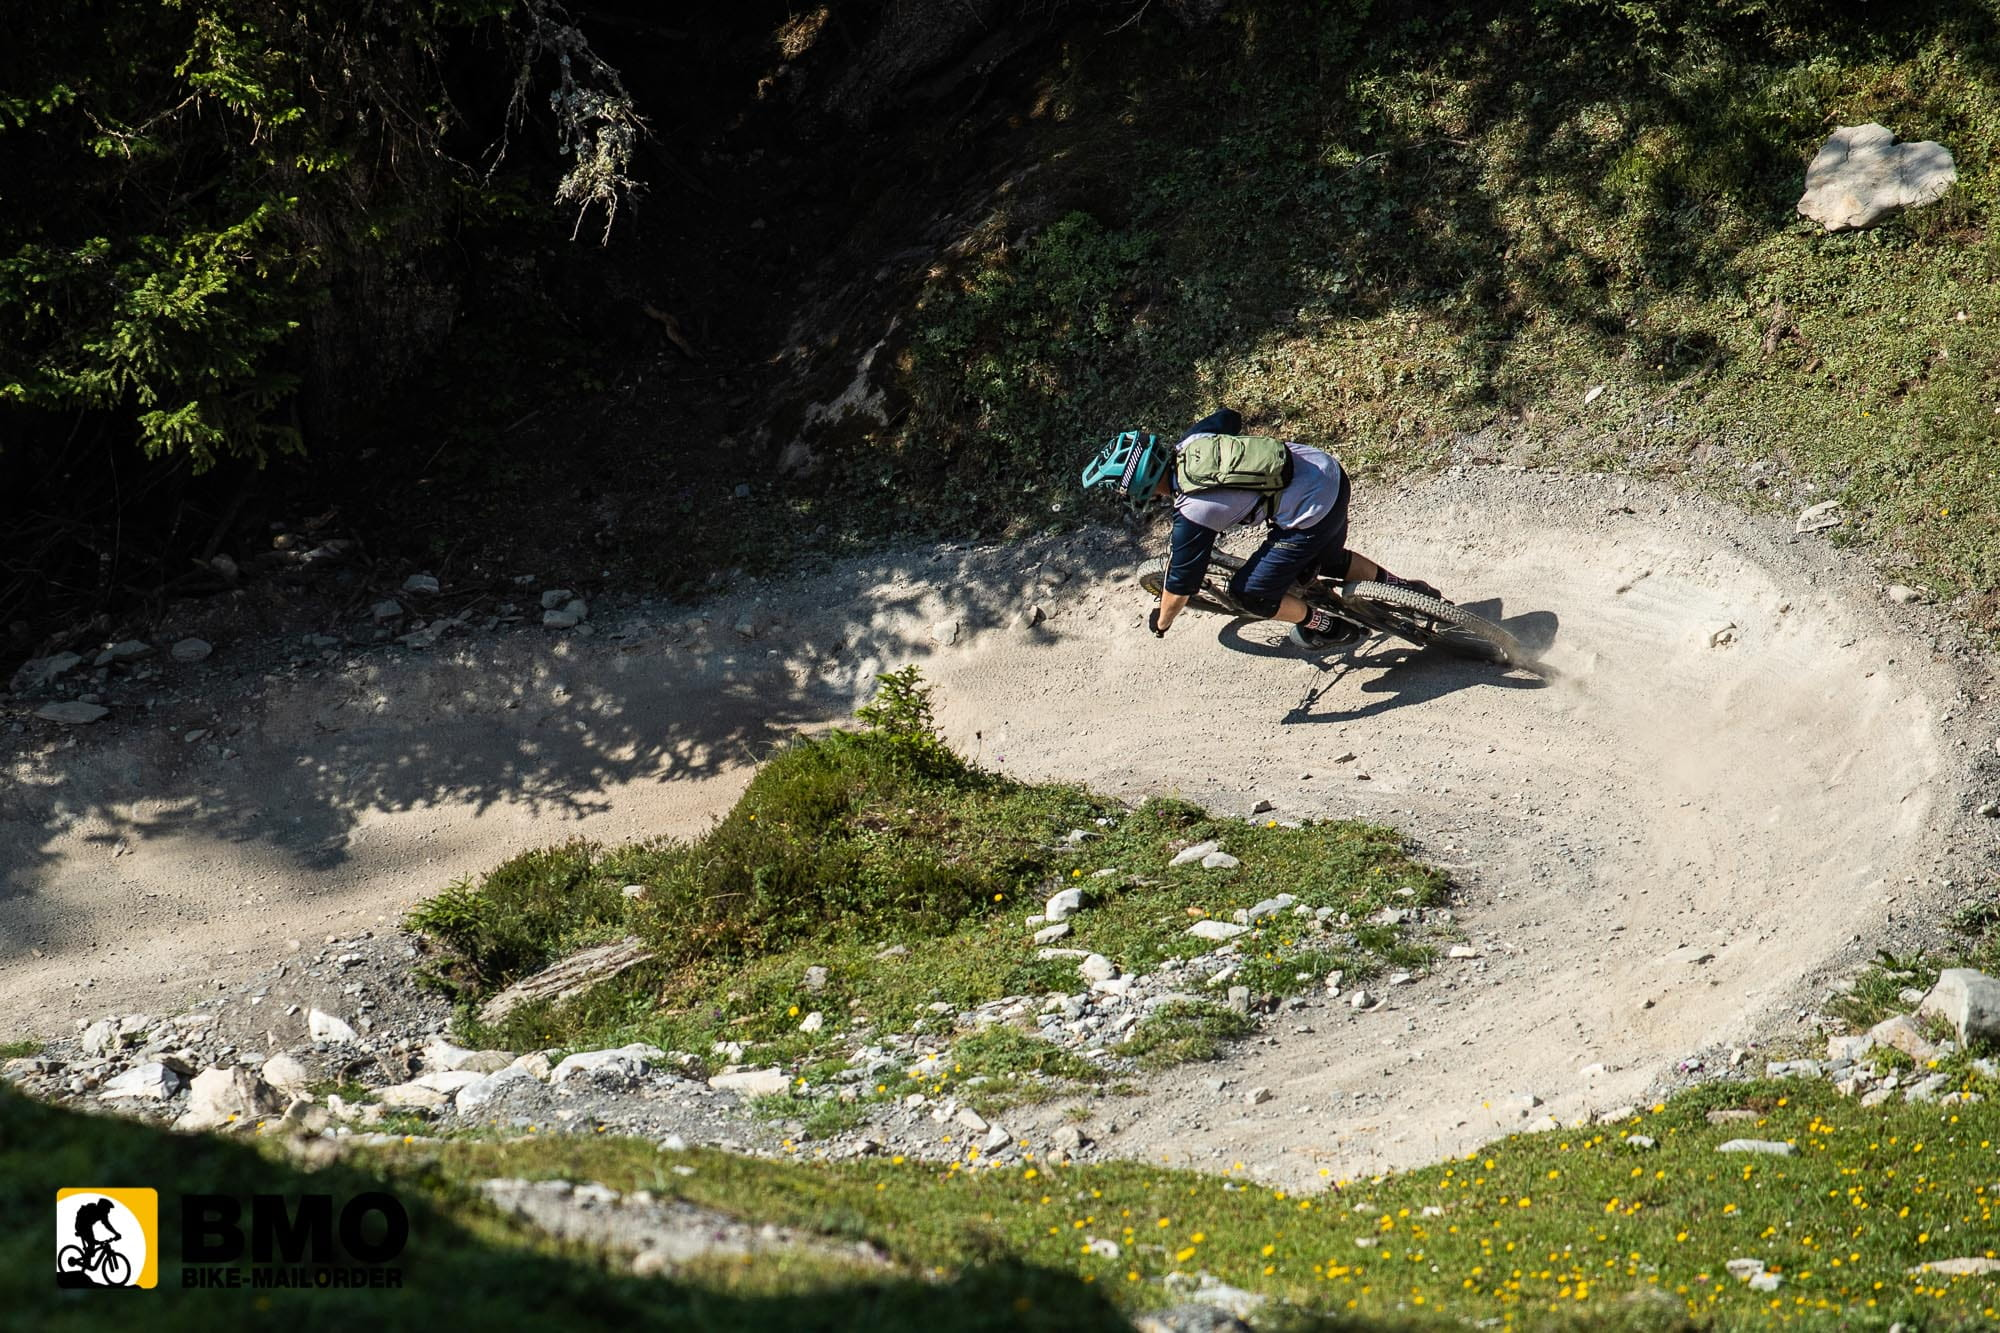 BMO_Home-of-Trails-Flims-Bike-Mailorder-1